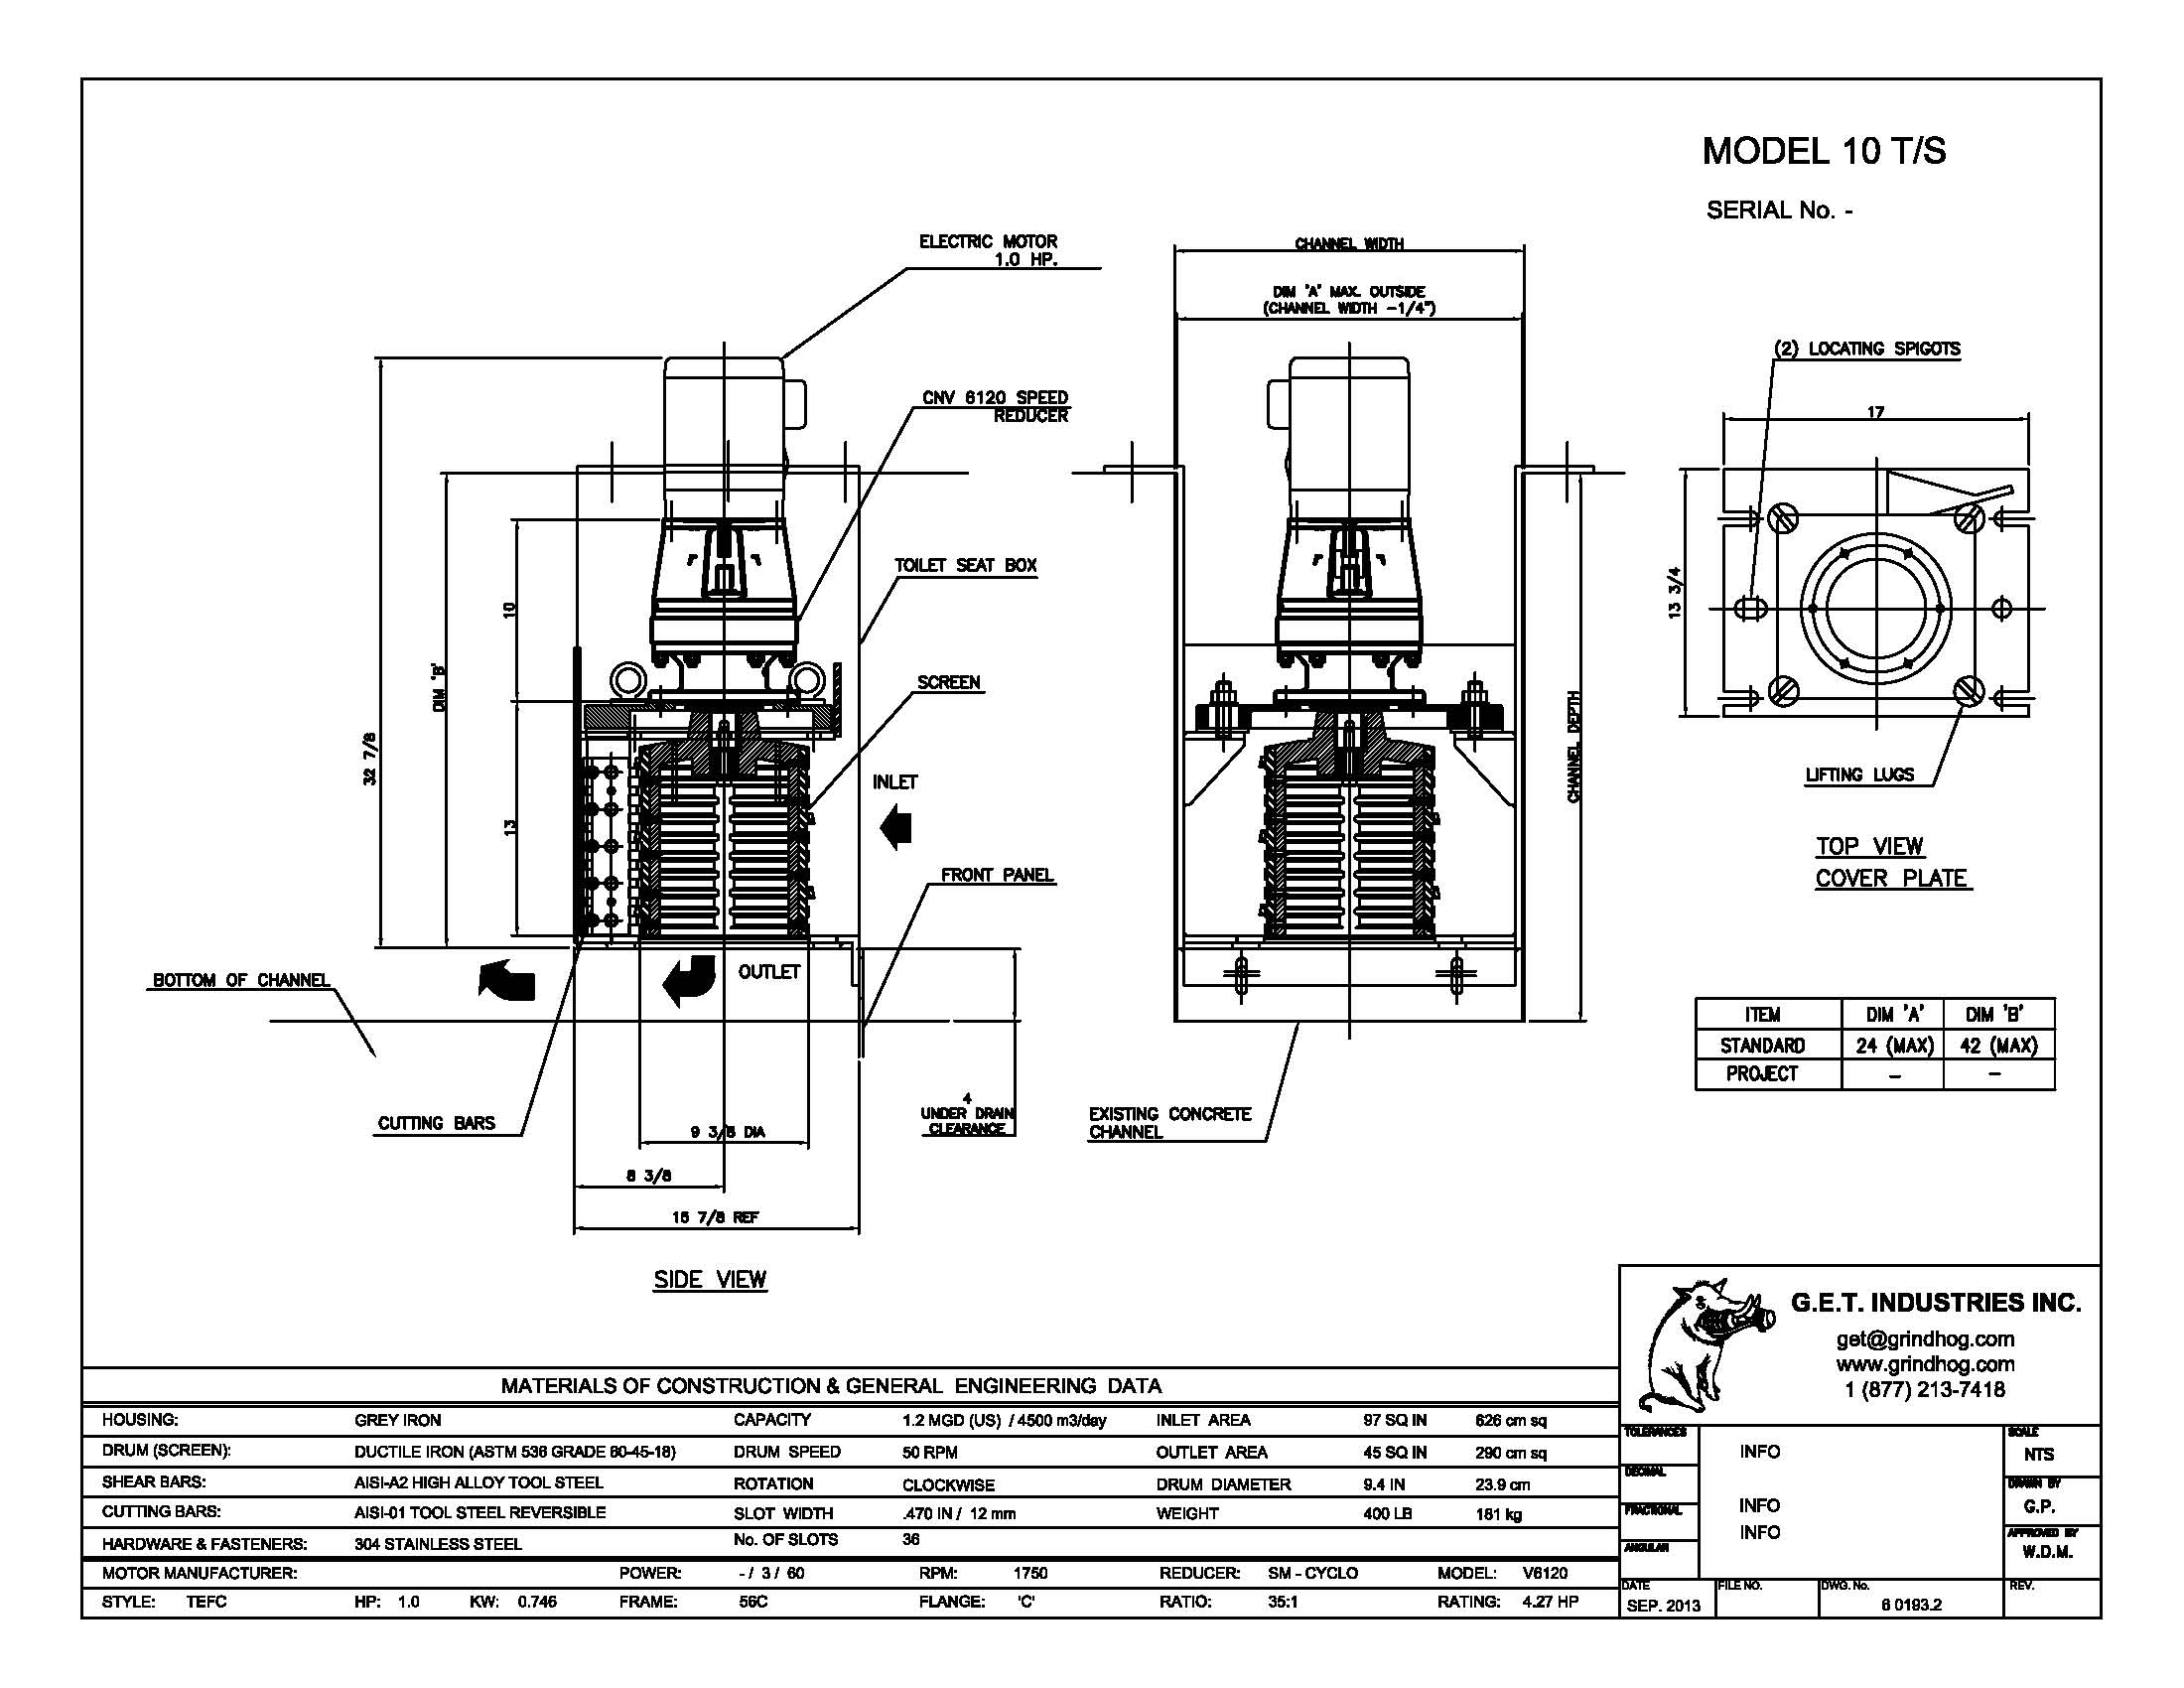 data drawing for Model 10 T/S